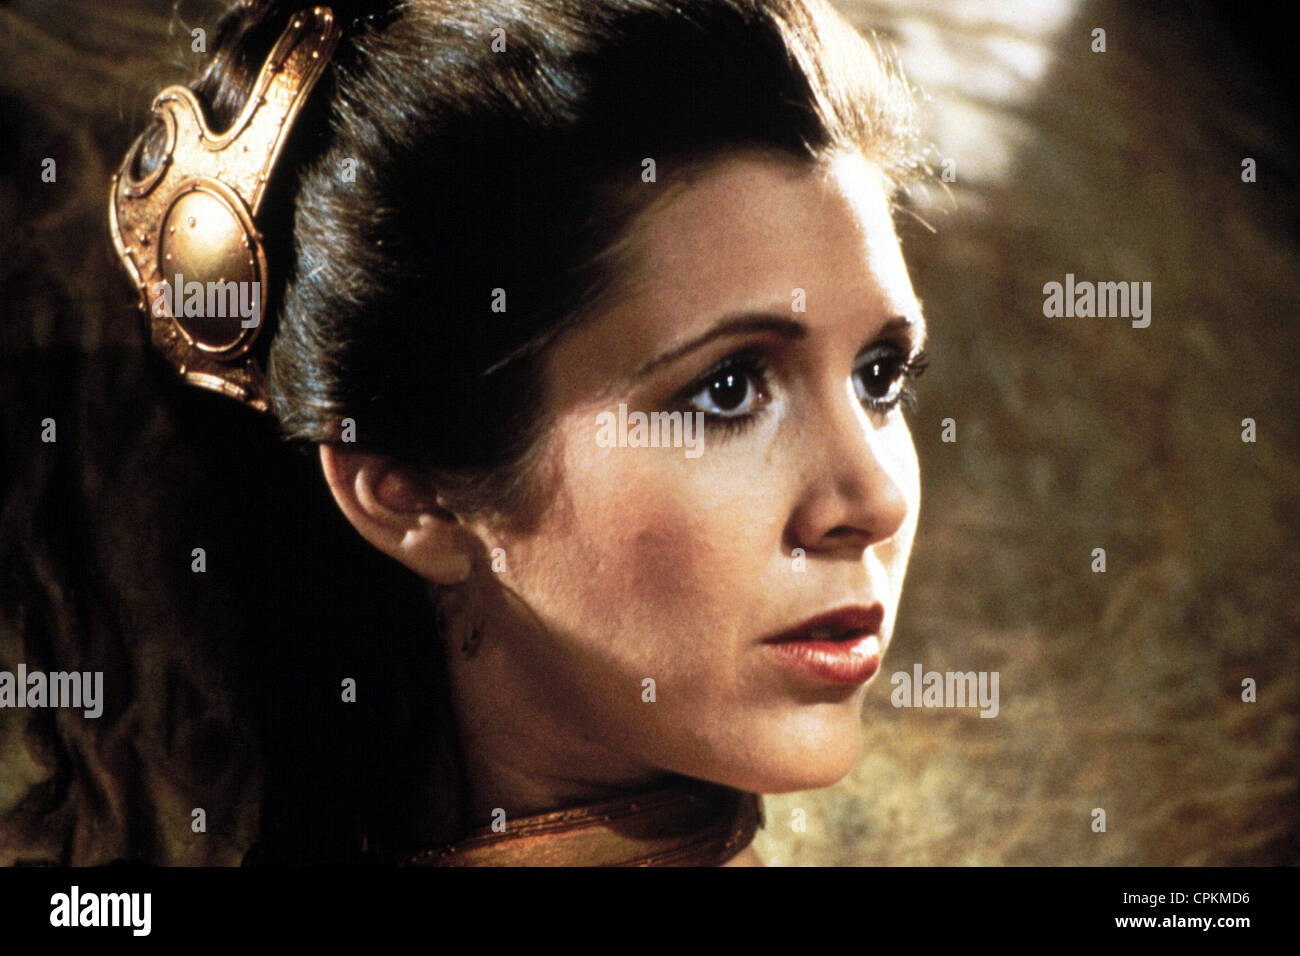 A portrait of Carrie Fisher in the 1983 film The Return of the Jedi. She plays the part of Princess Leia Organa. - Stock Image